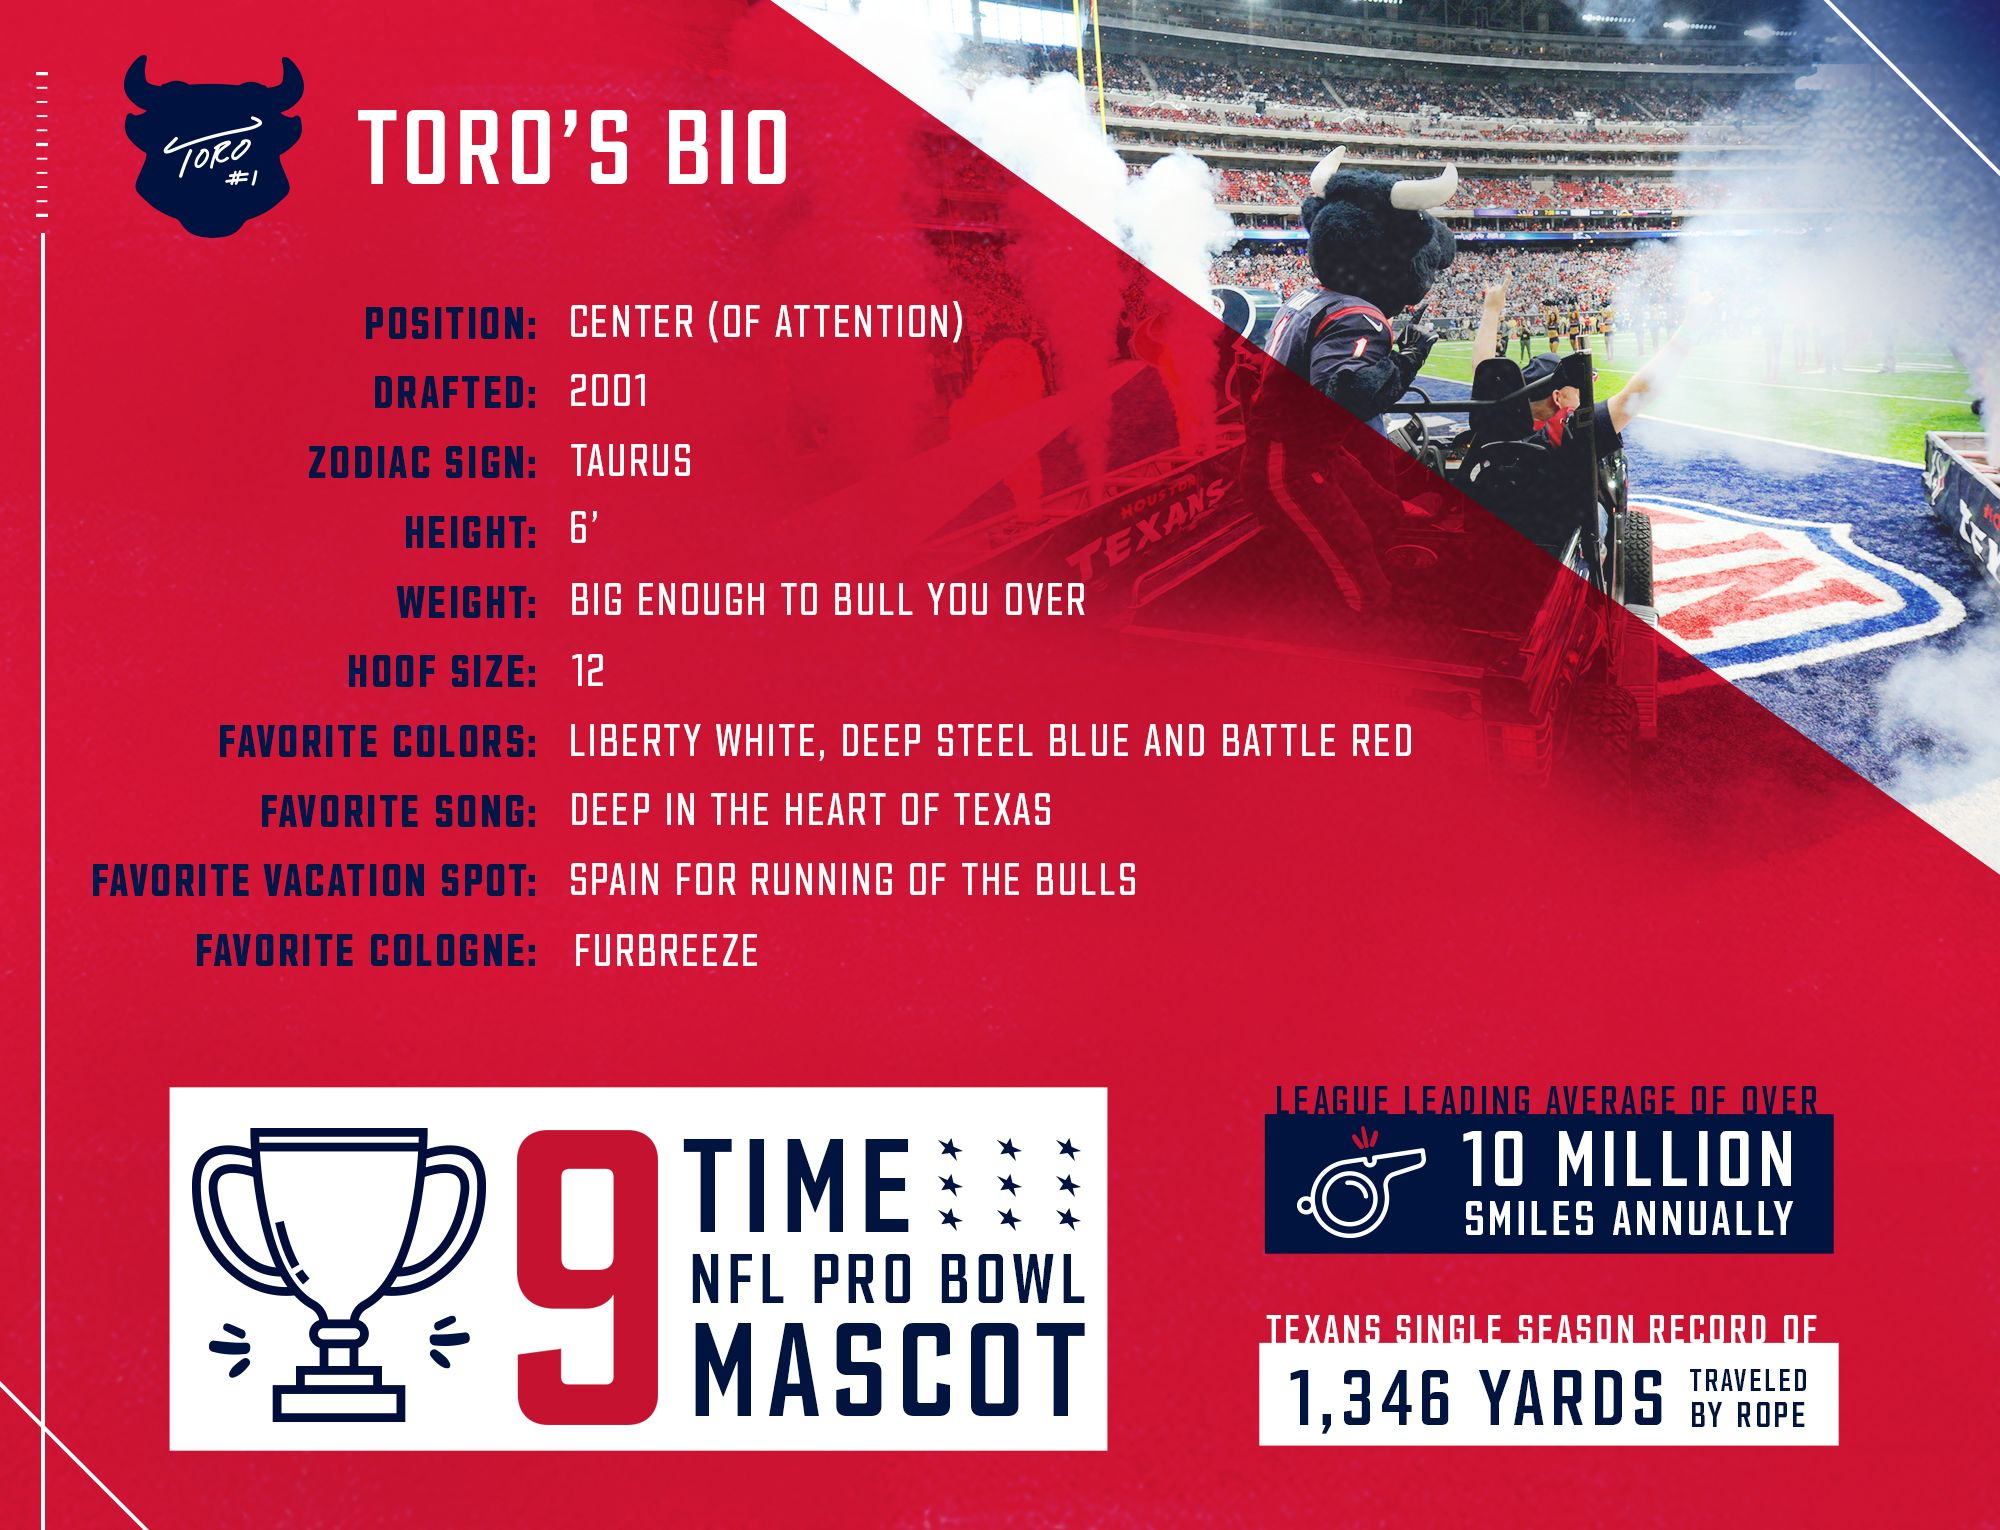 TORO's Bio. Position: Center (of attention). Drafted: 2001. Zodiac Sign: Taurus. Height: 6 foot. Weight: Big enough to bull you over. Hoof size: 12. Favorite colors: Liberty White, Deep Steel Blue and Battle Red. Favorite Song: Deep in the Heart of Texas. Favorite vacation spot: Spain for running of the bulls. Favorite cologne: Furbreeze. 9-time NFL Pro Bowl Mascot. League leading average of over 10 million smiles annually. Texans single season record of 1,346 yards traveled by rope.